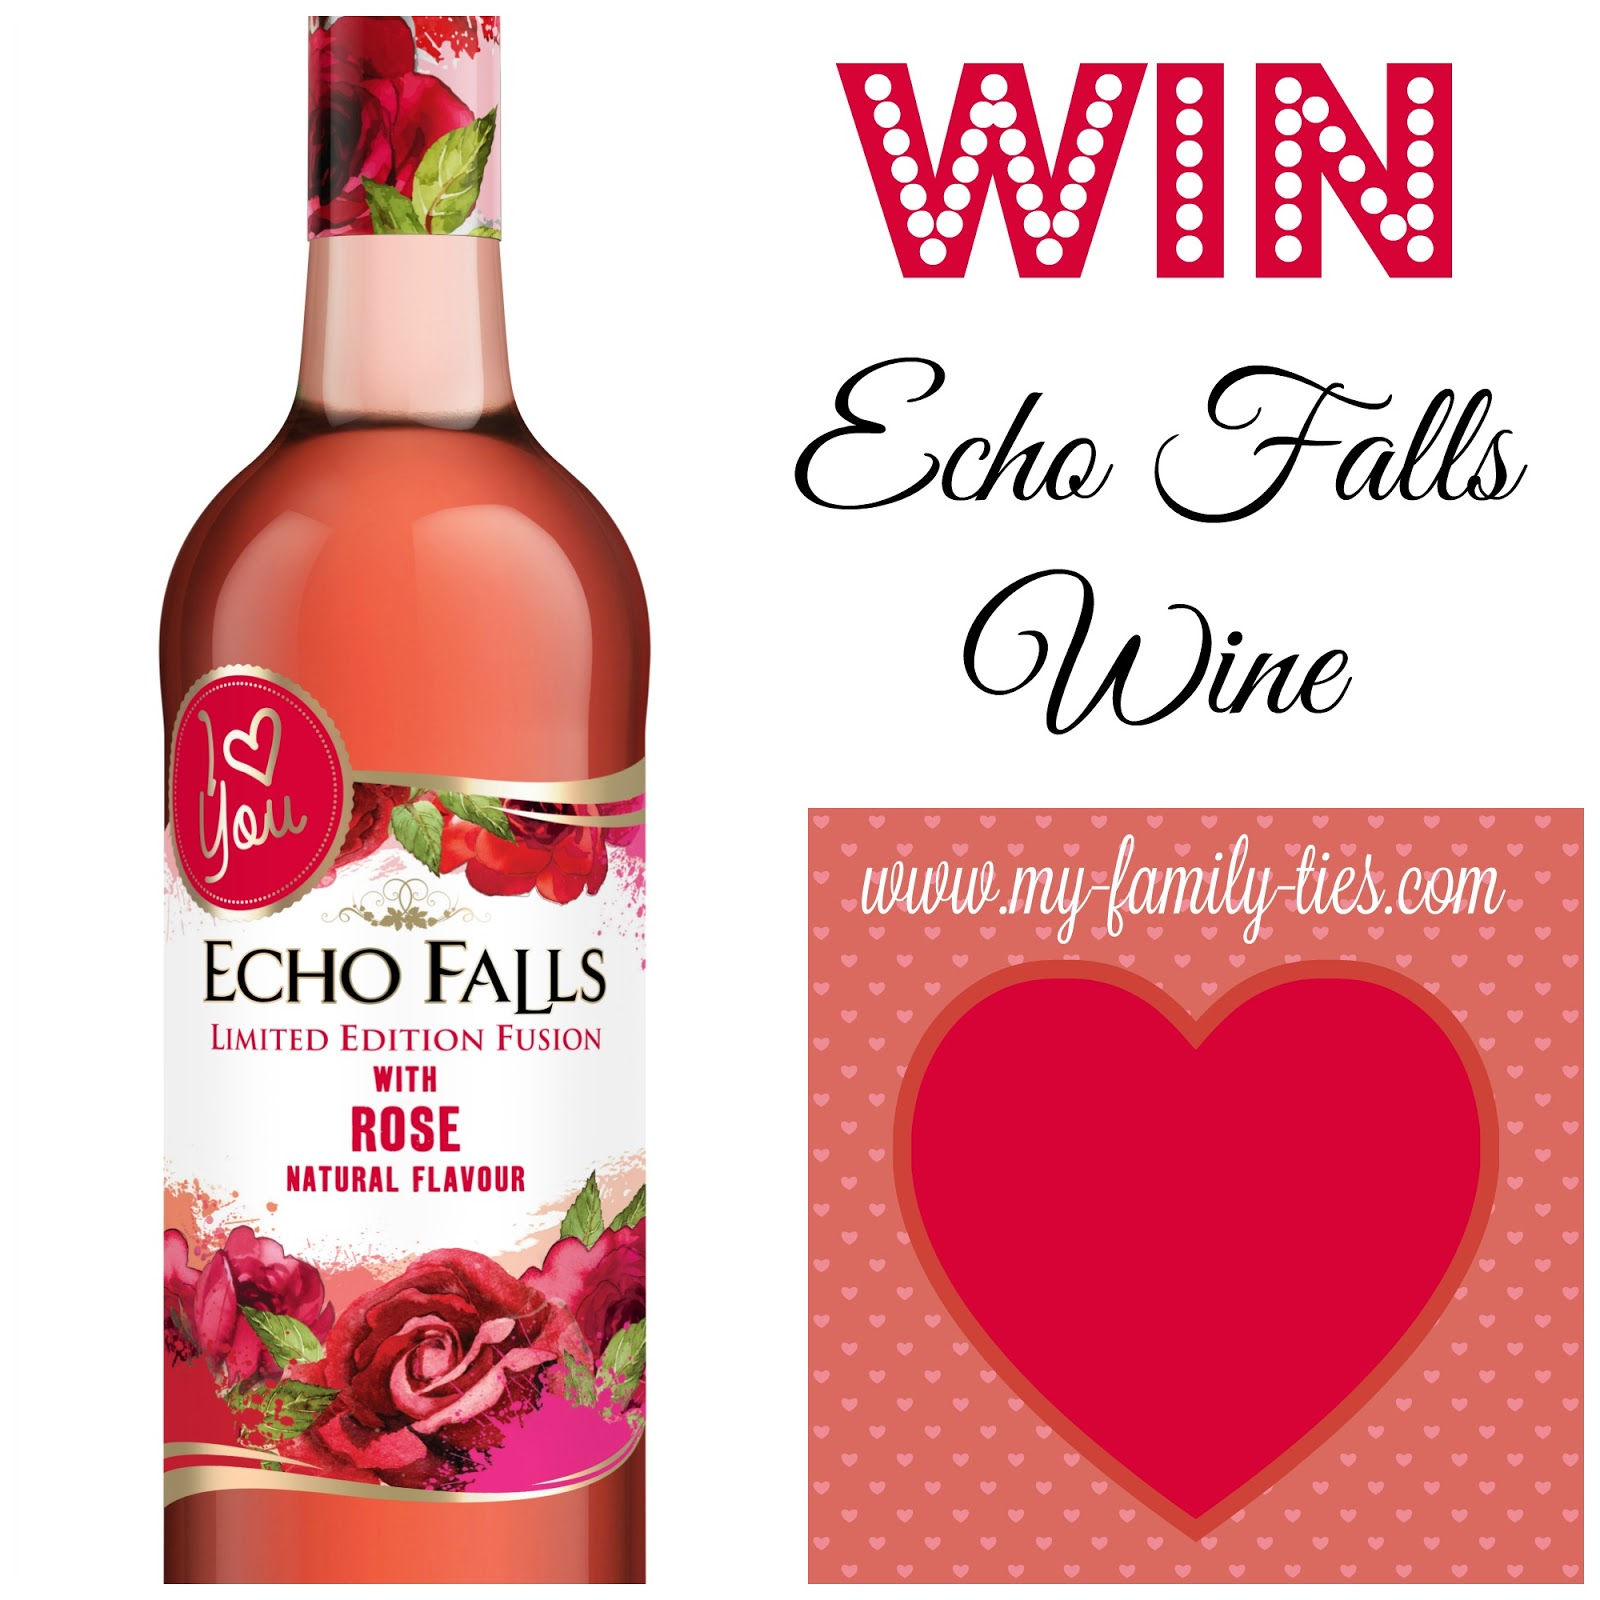 Echo Falls Rose Limited Edition Valentine Wine Competition On www.my-family-ties.com